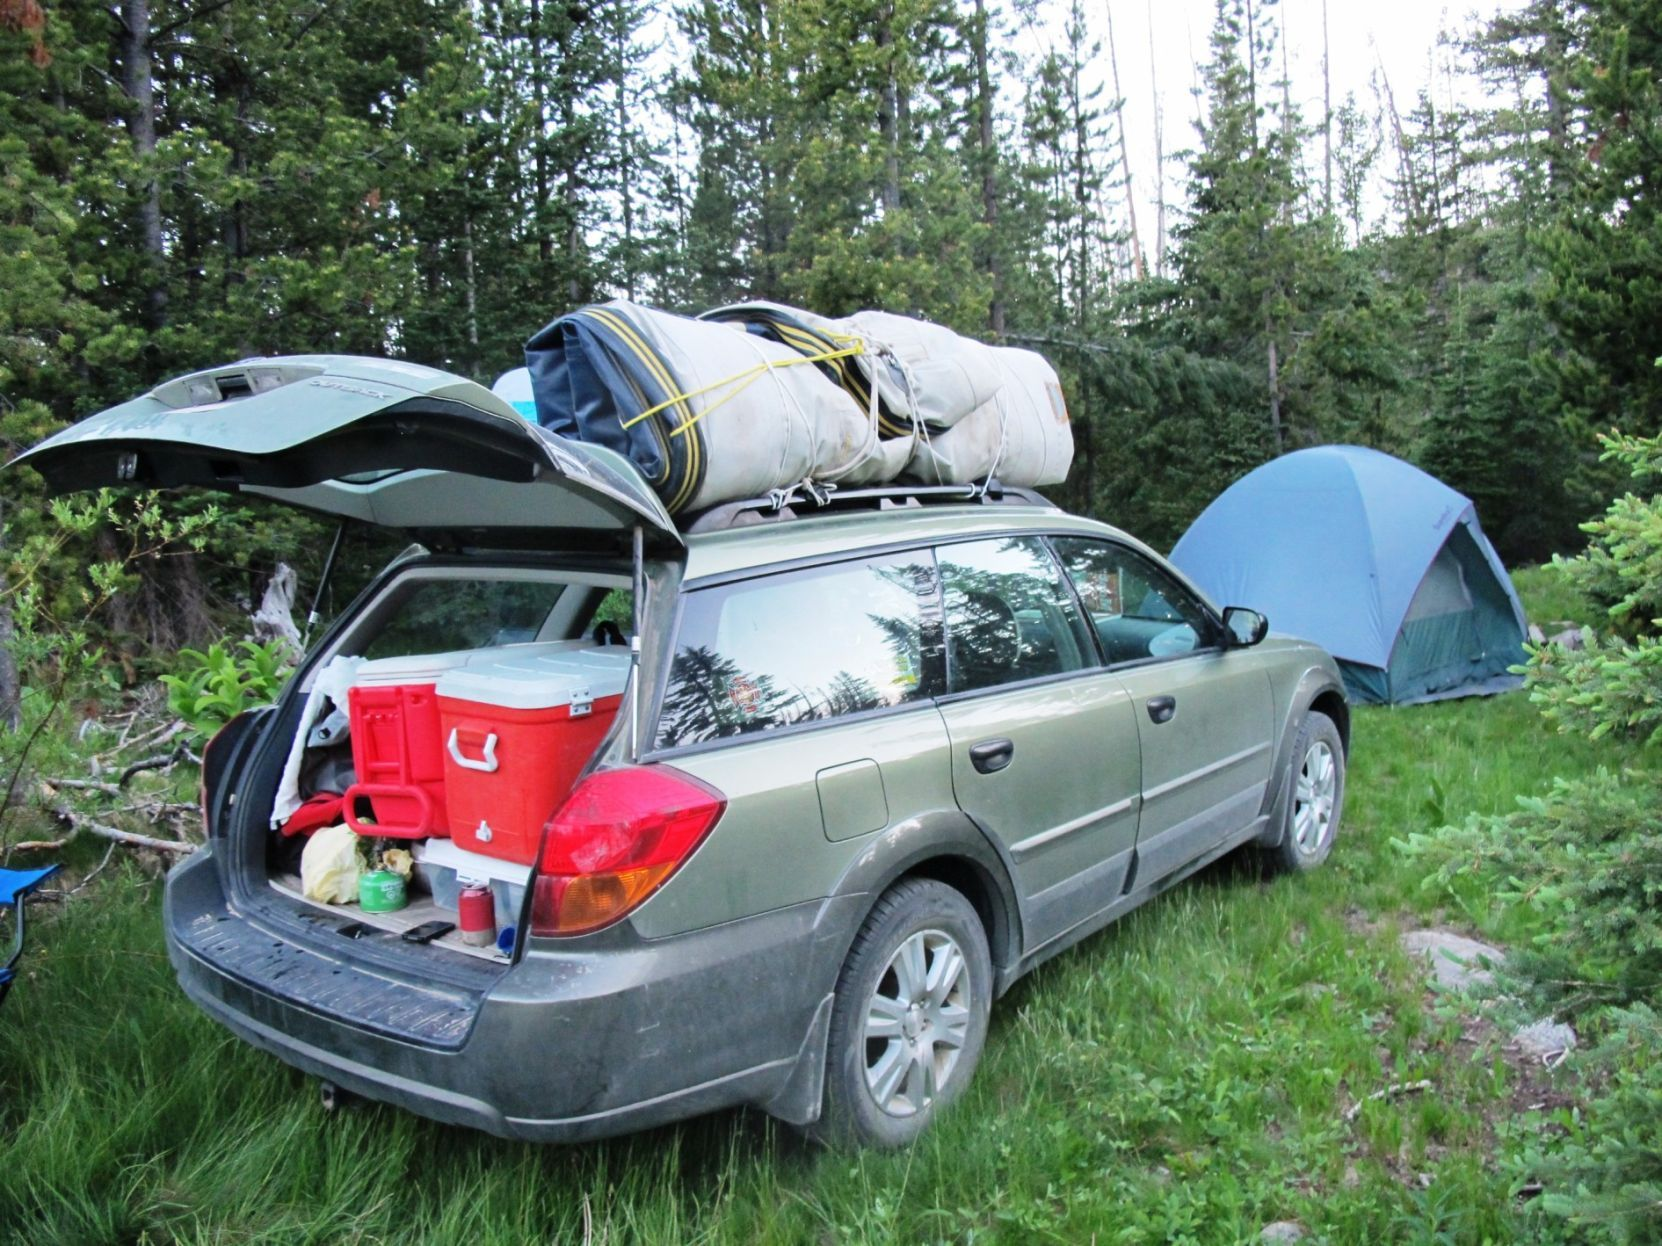 Car camping Dispersed camping sites offer alternative